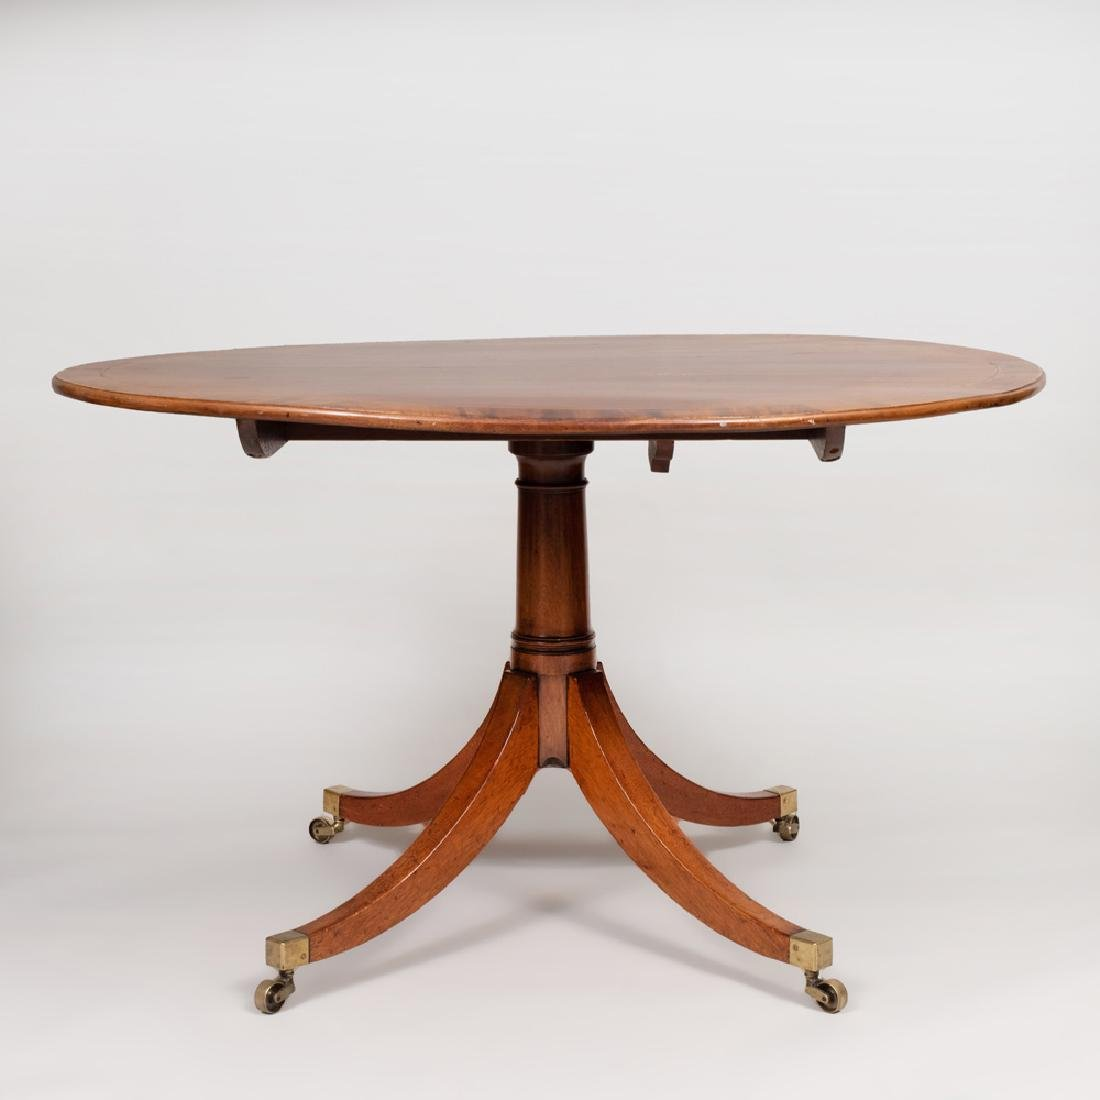 Regency Style Mahogany, Ebony and Boxwood Strung - 4